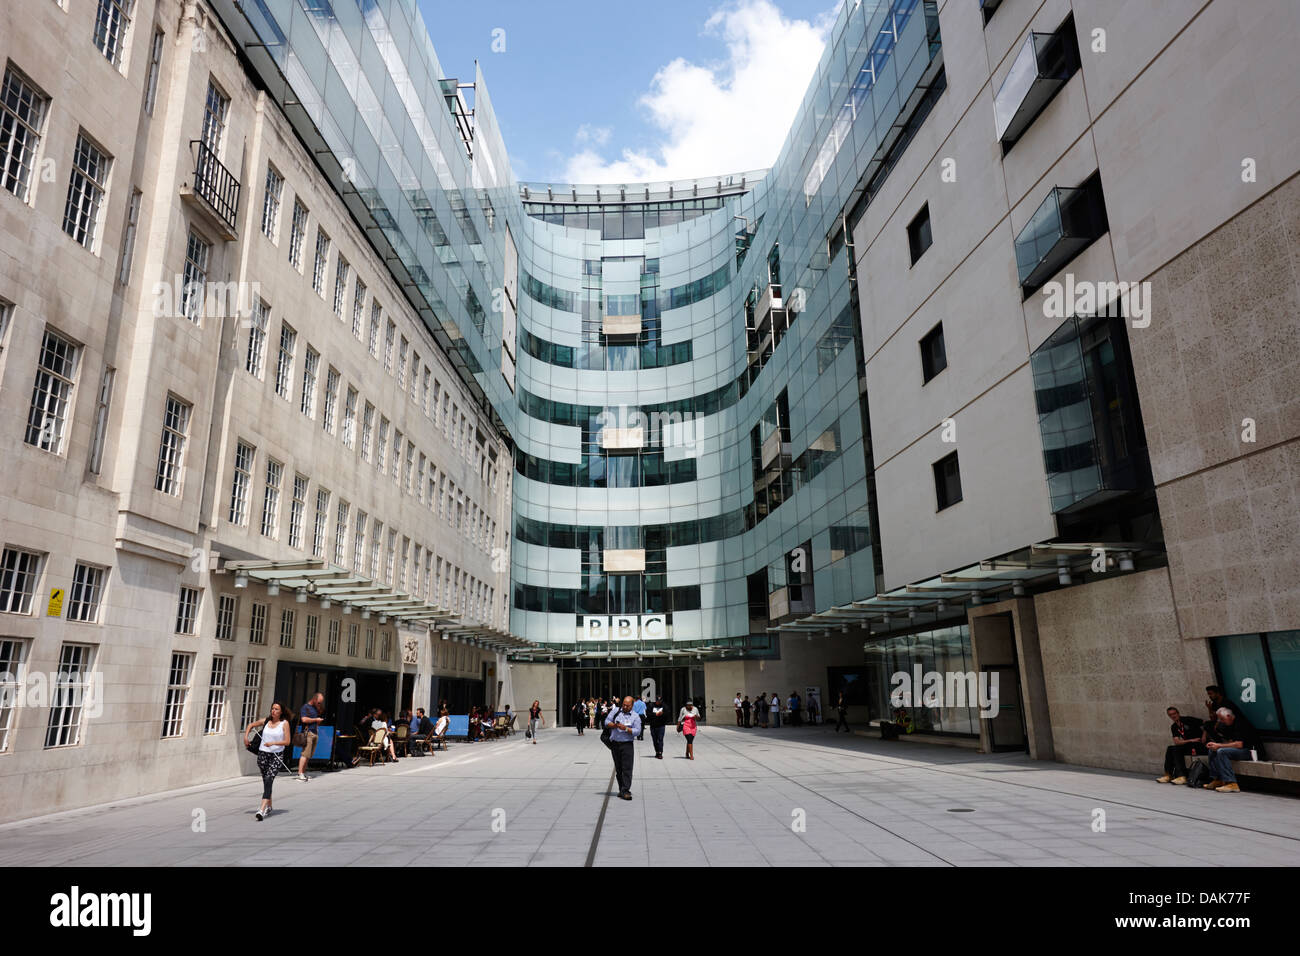 new bbc broadcasting house london, england uk - Stock Image